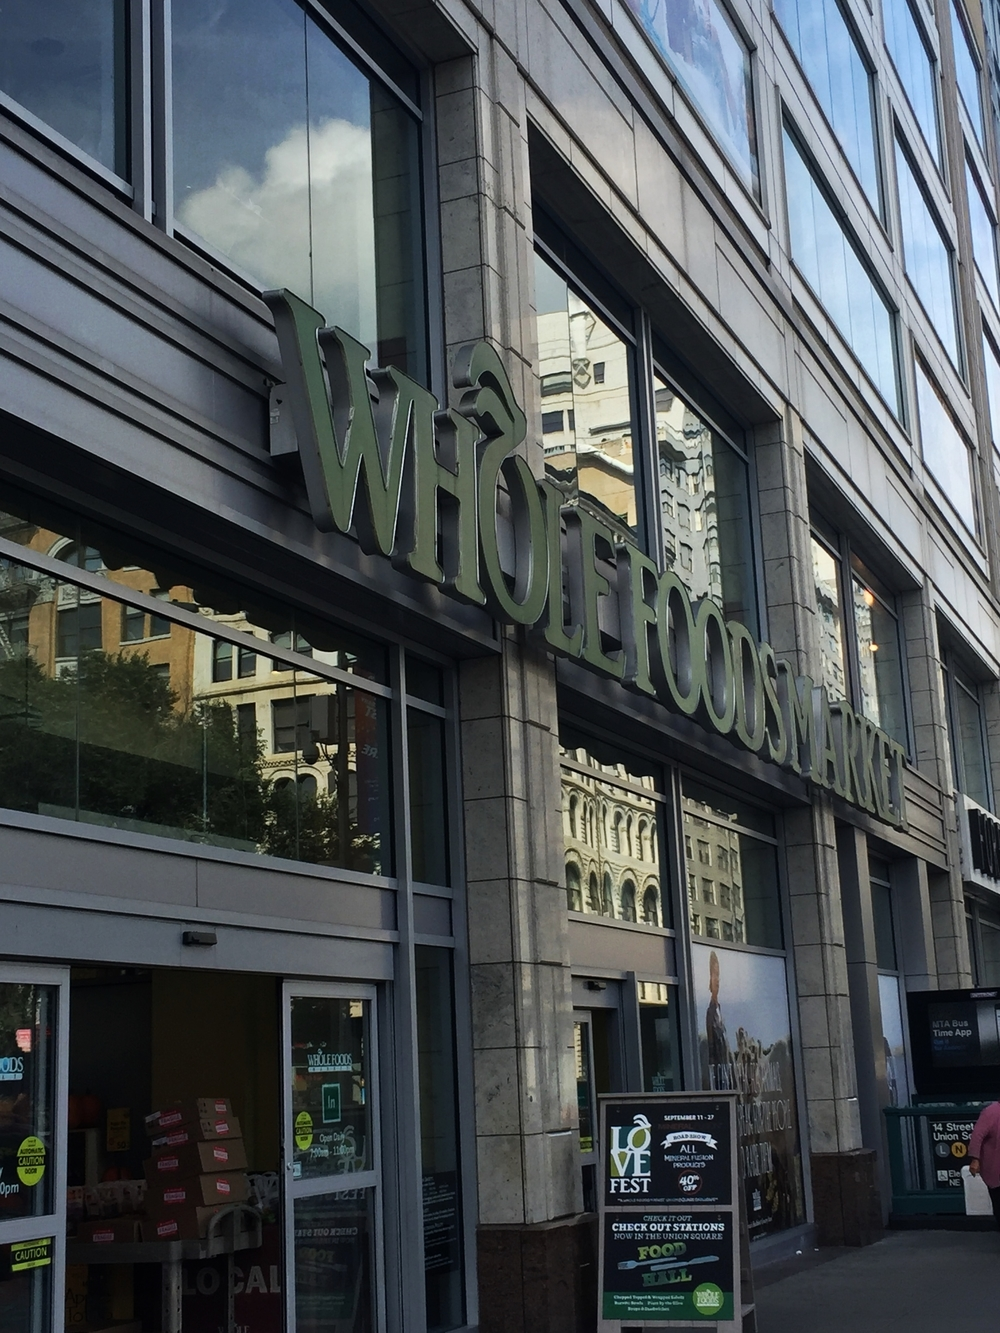 Whole foods on 14th street